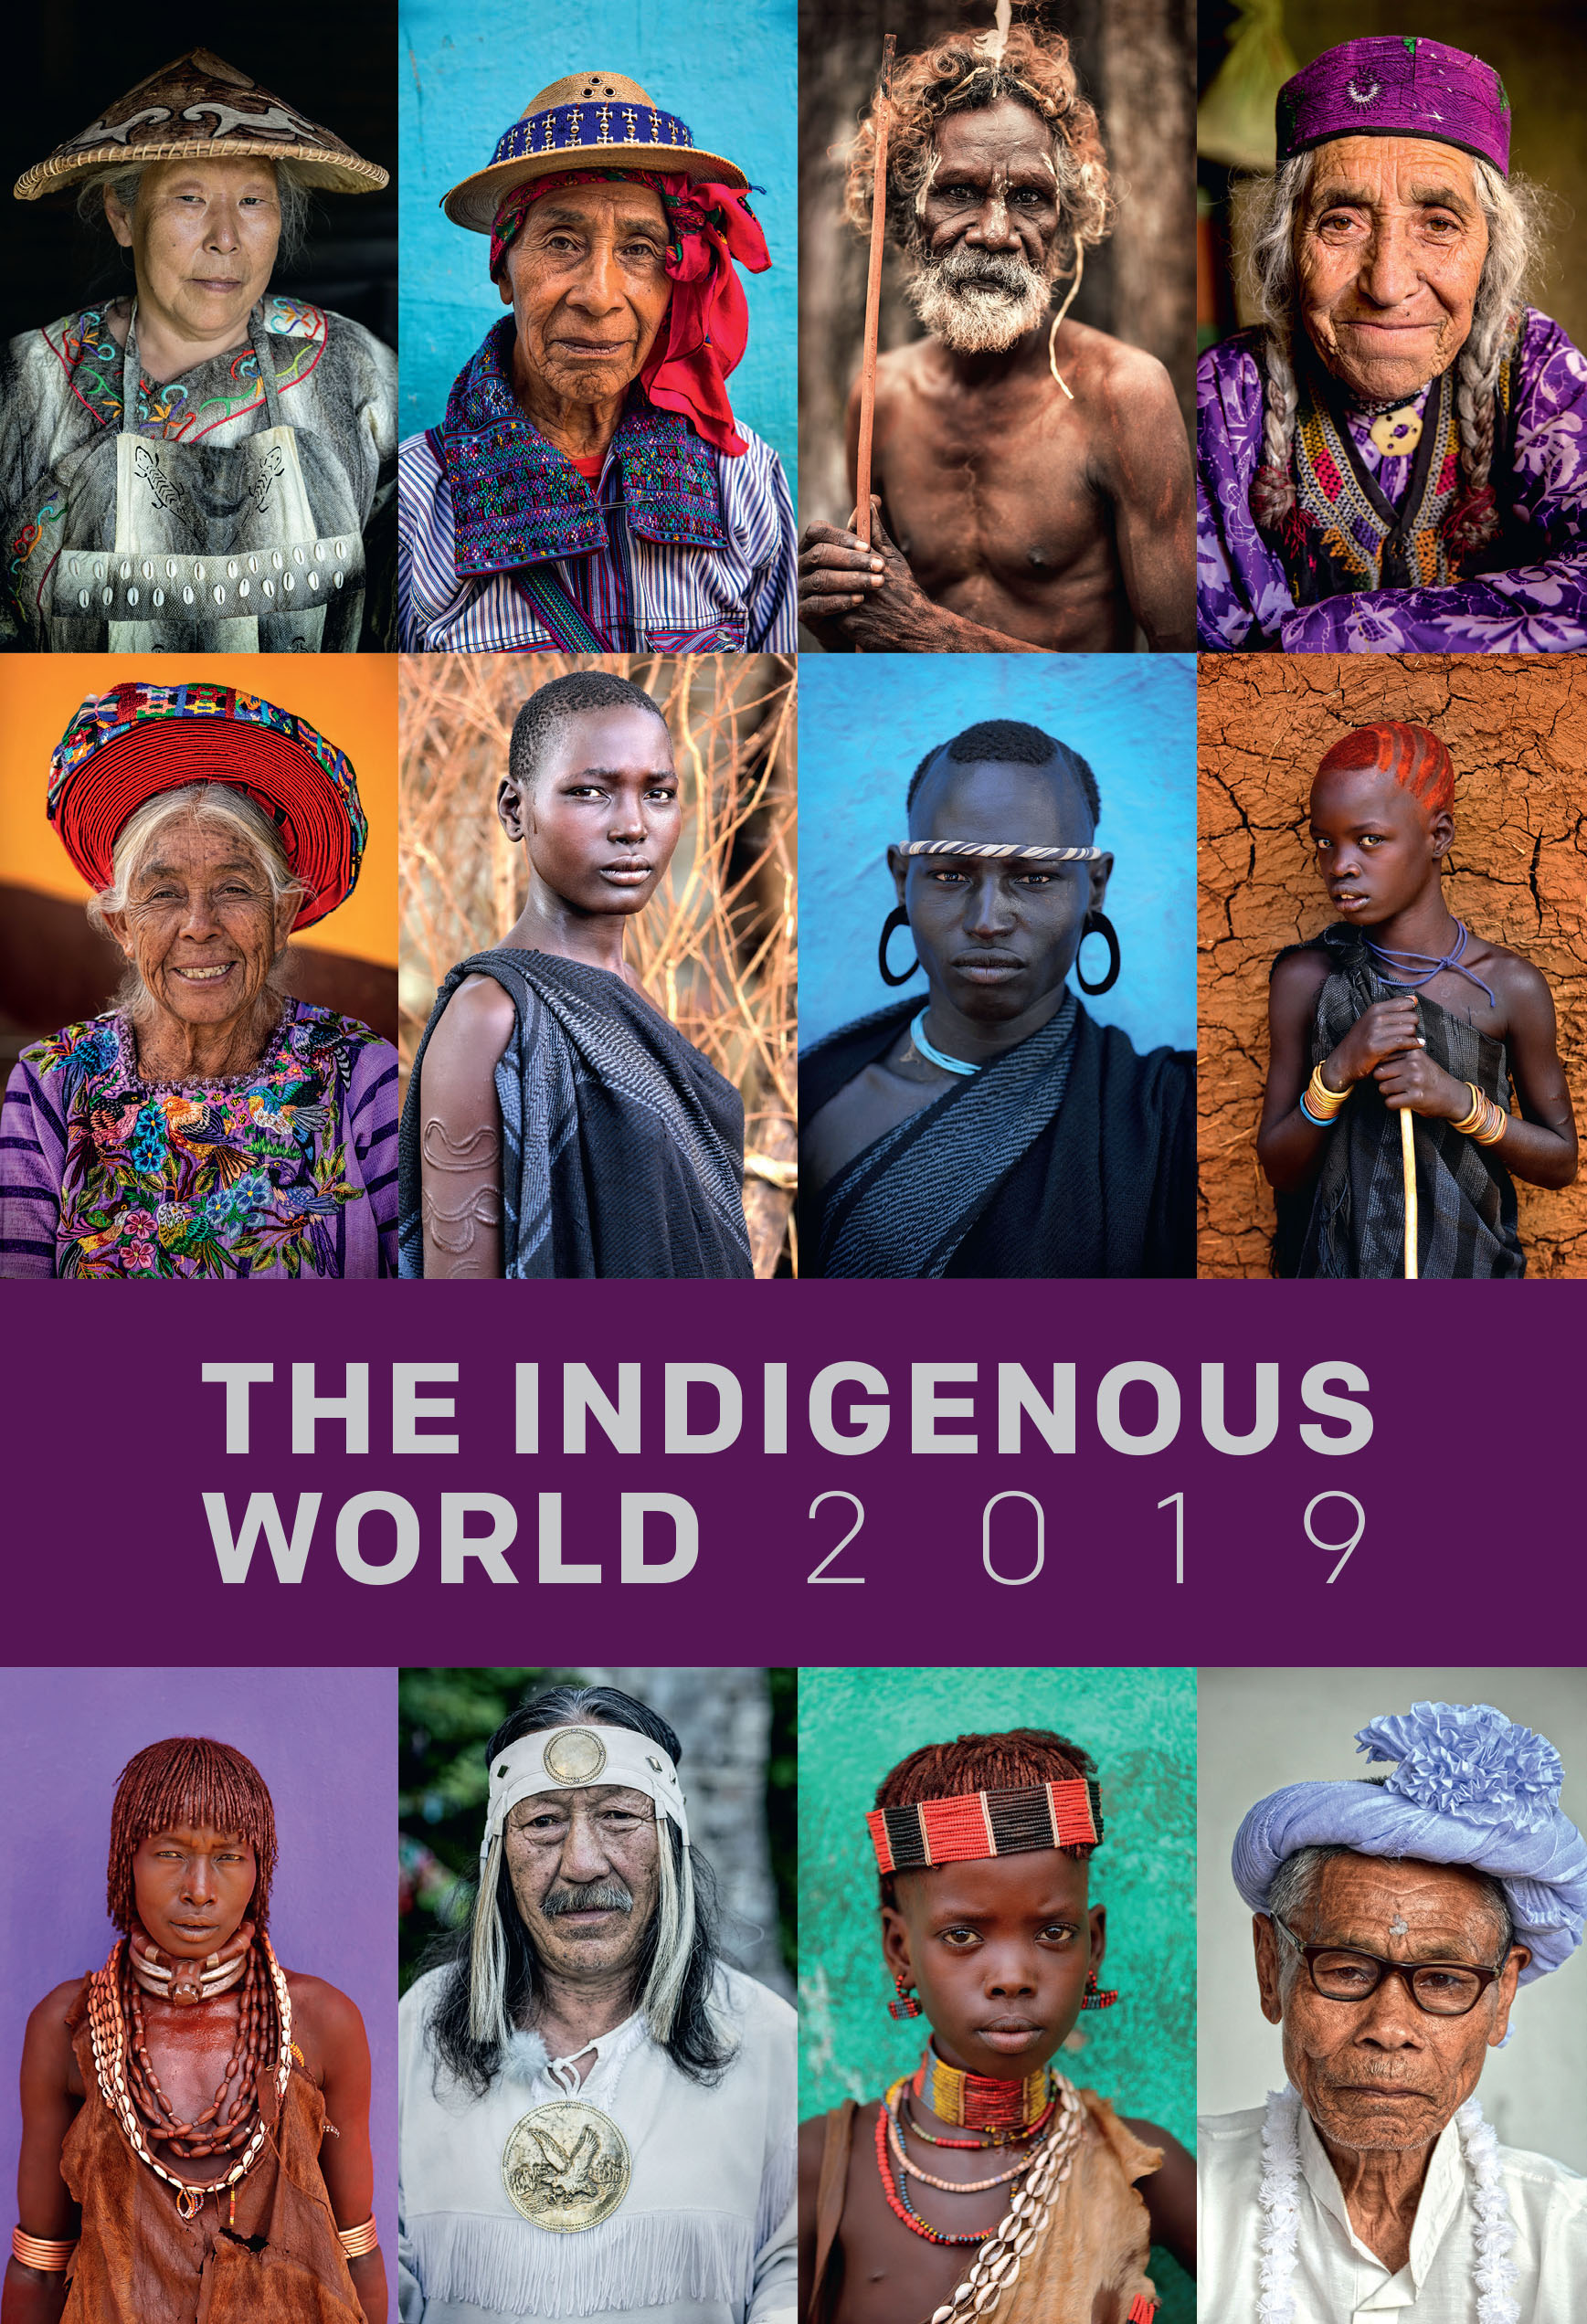 The Indigenous World 2019